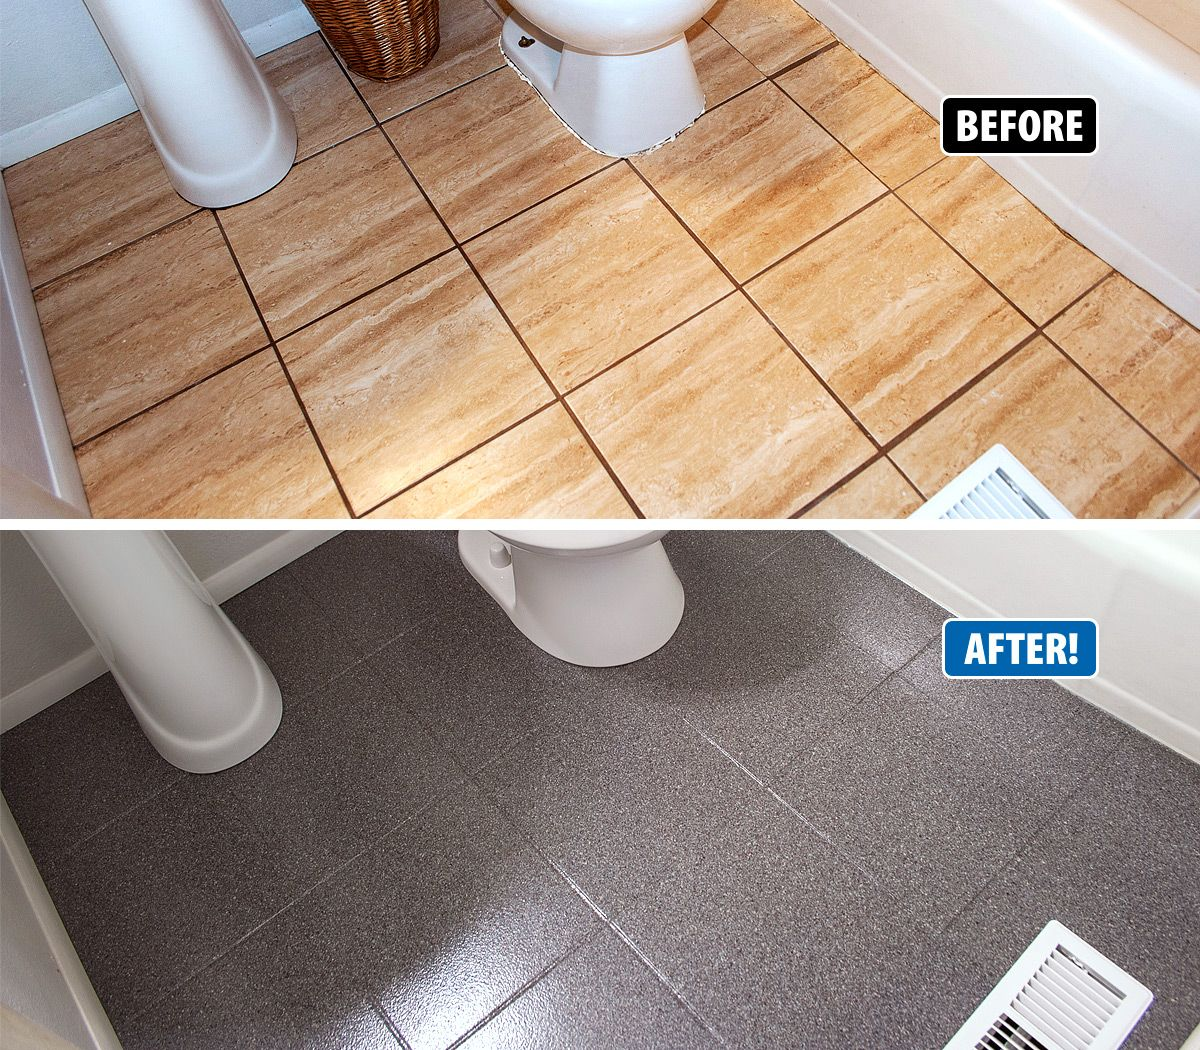 Damaged Or Dated Tile Can Be Refinished Instead Of Replaced It S